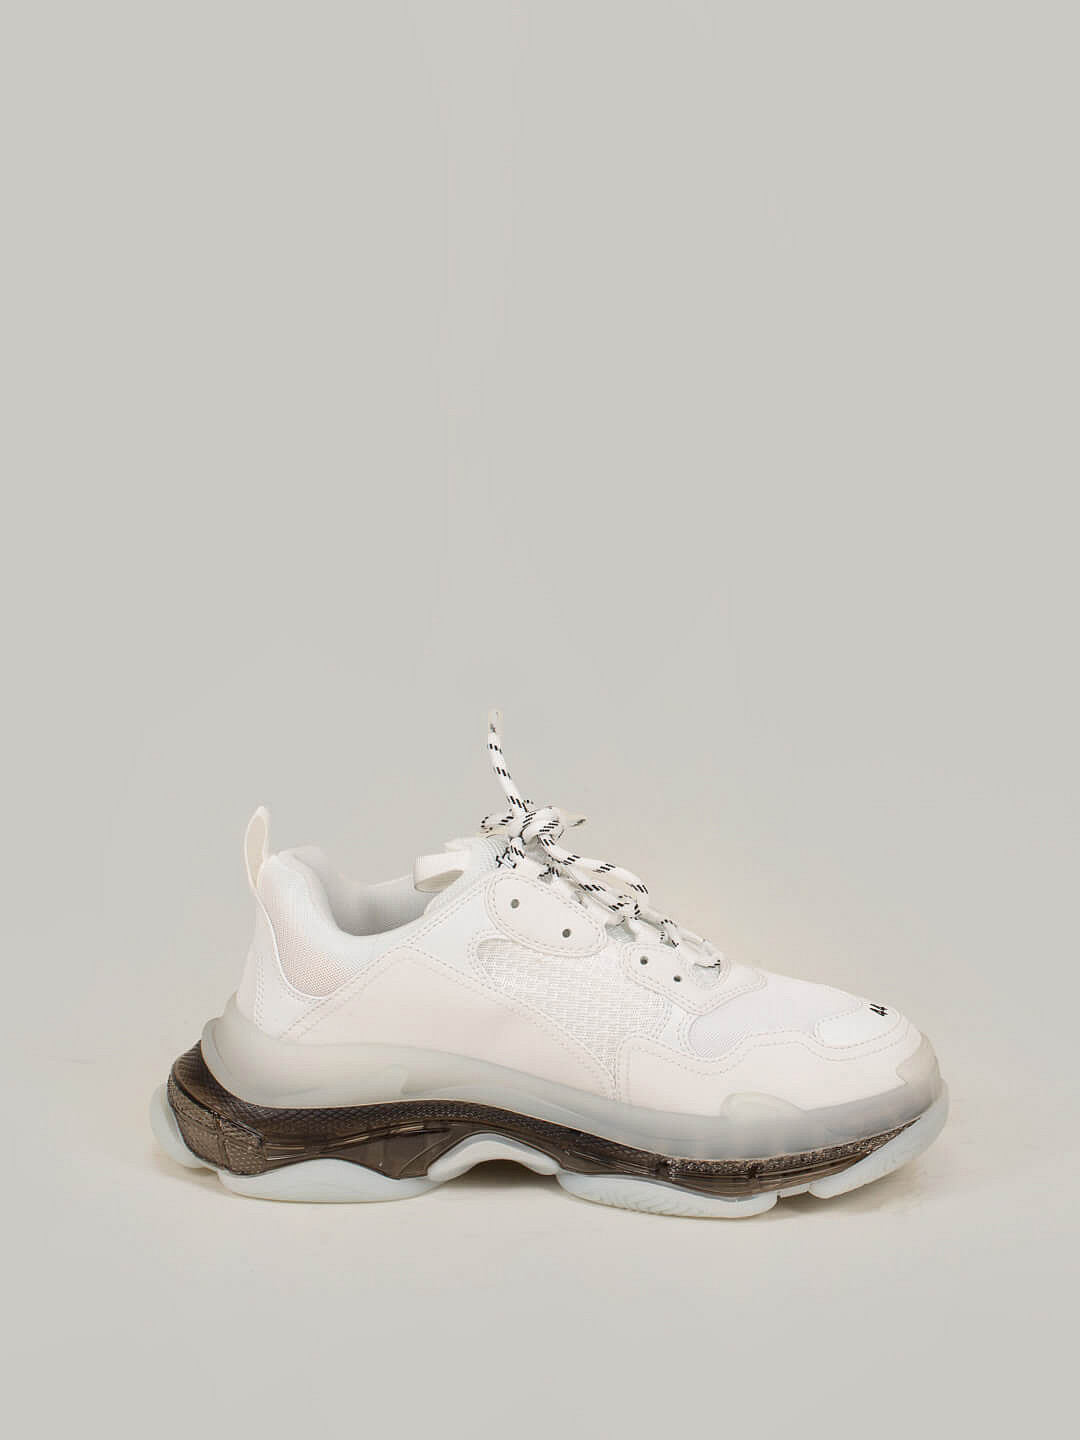 Triple S Clear Sole Leather Free white transparant